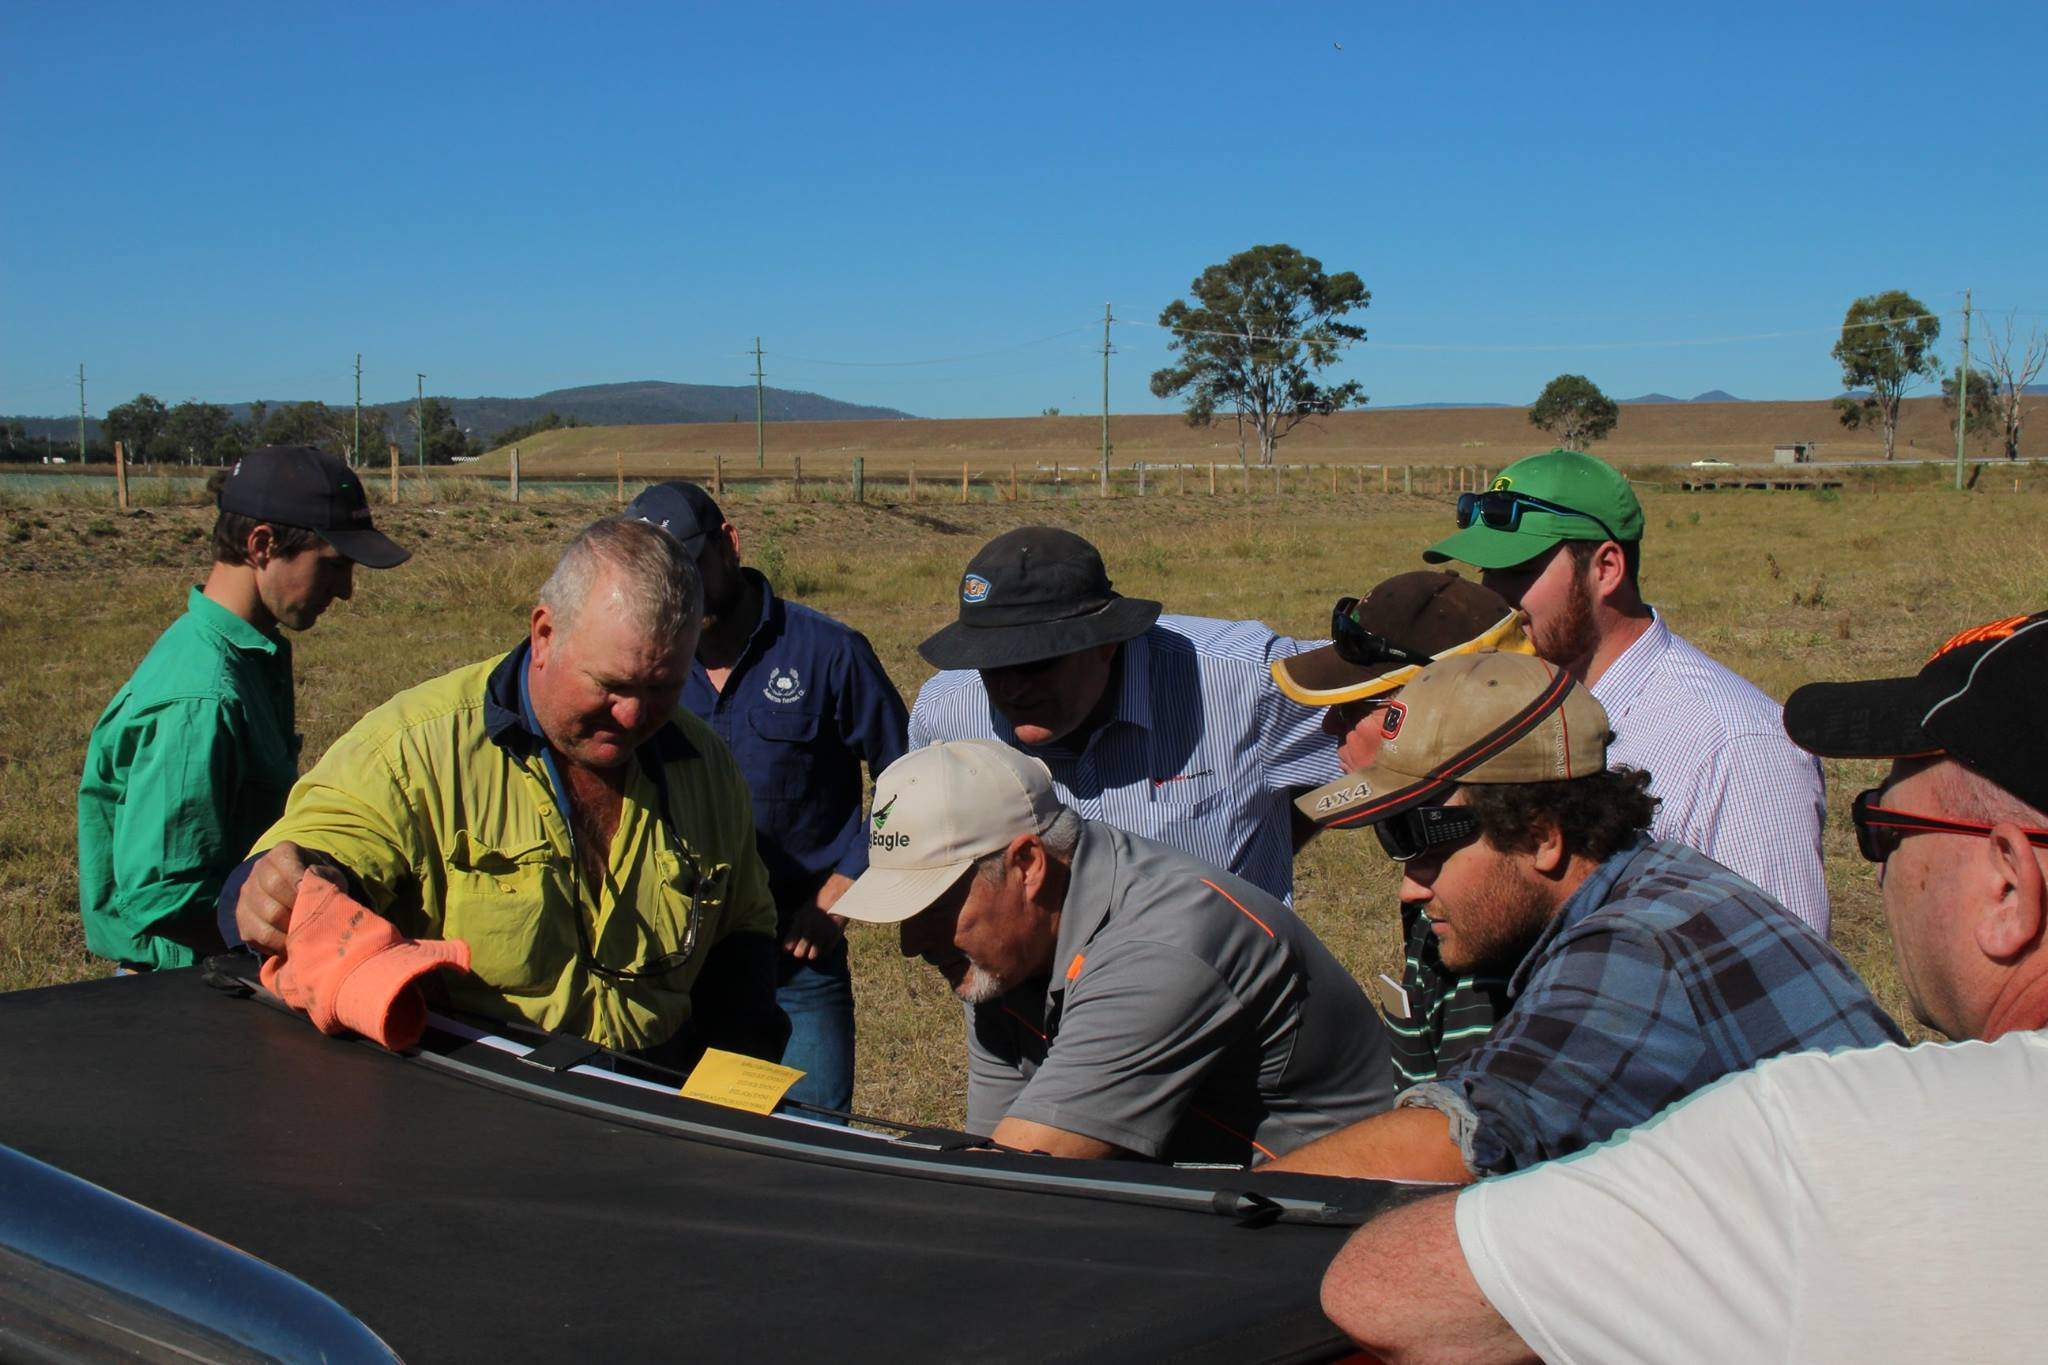 AgEagle drone agriculture mapping and crop survey demonstration at Laidley